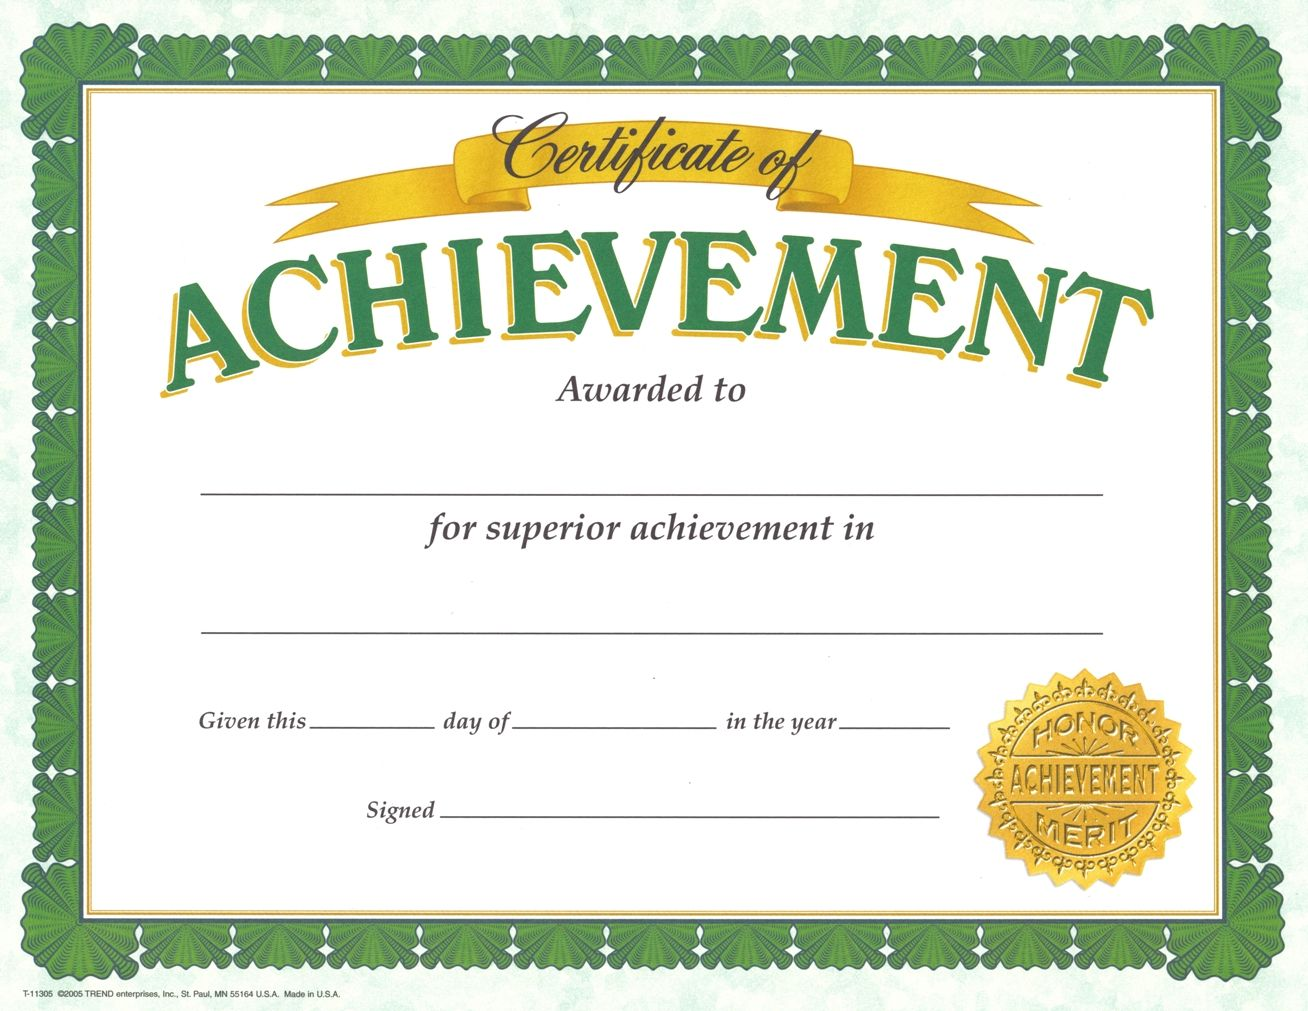 Welcome To Our Free Article About Soccer Award Certificates. This Article  Provides Some Interesting Certificates On Soccer Achievement For Your Kids.  Certificate Of Achievement Template